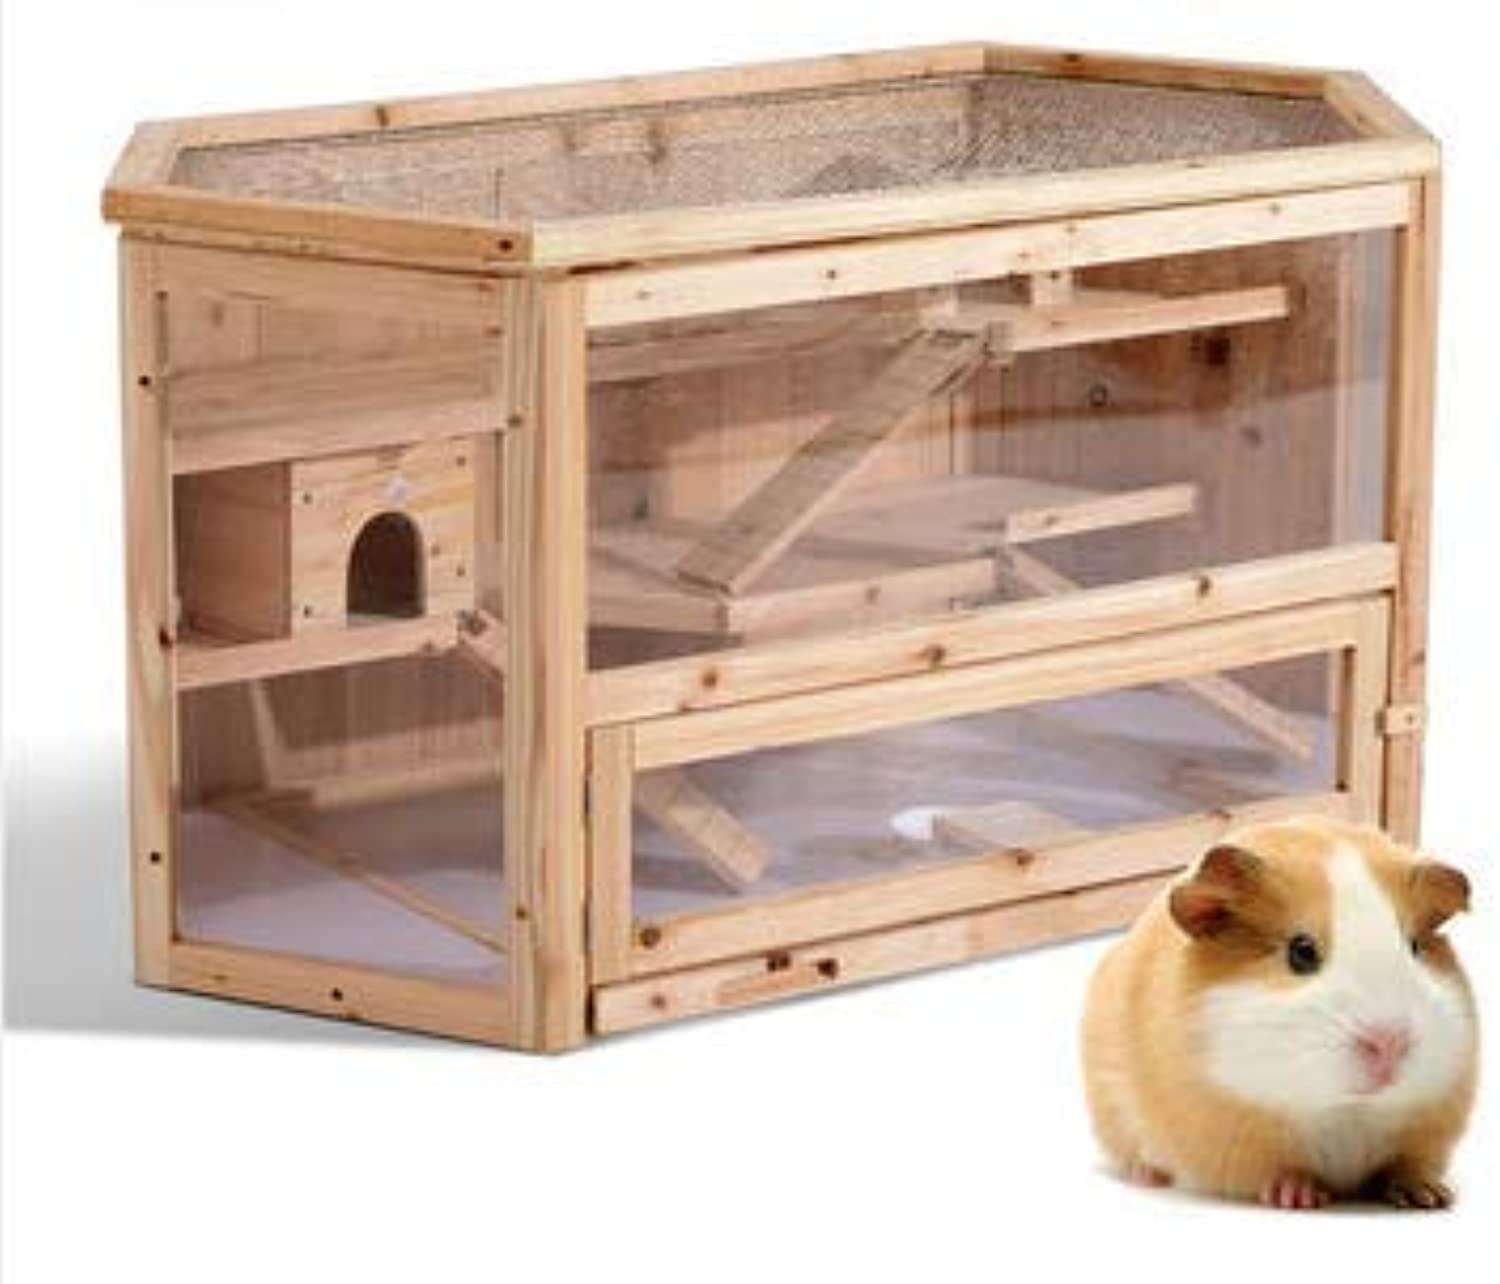 AngelJane Gift 3Tier Wooden Hamster Cage House Rodent Mouse Pet Small Animal Wood Layers Kit Play Small Animals 105x60x56cm